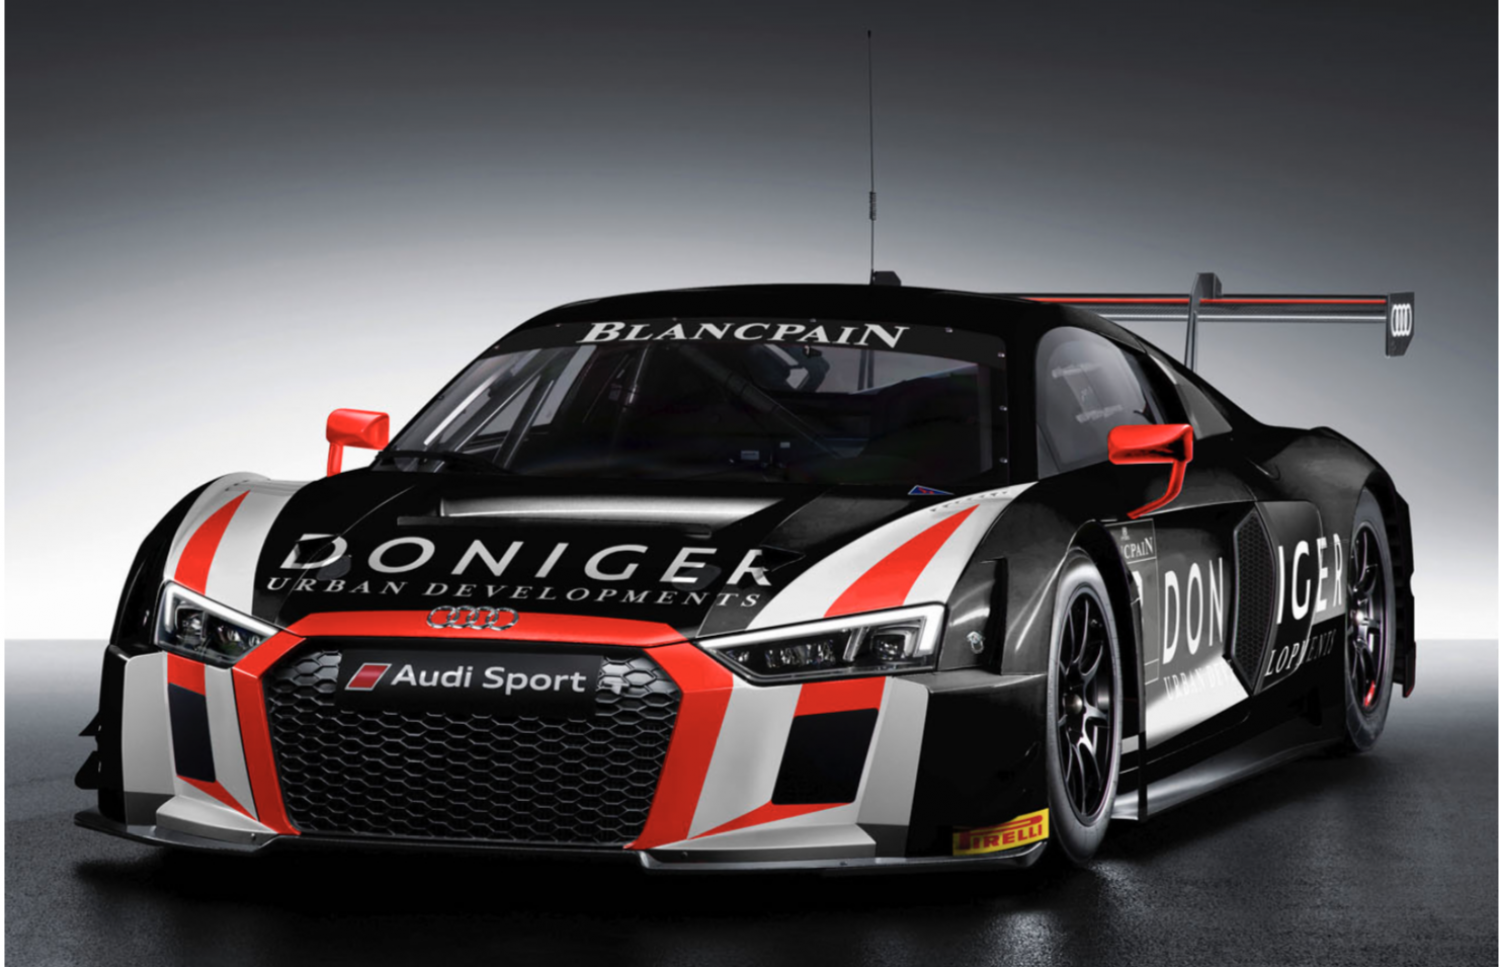 Pieter and Steijn Schothorst will compete full Blancpain GT Series campaign with an Audi R8 LMS and Attempto Racing